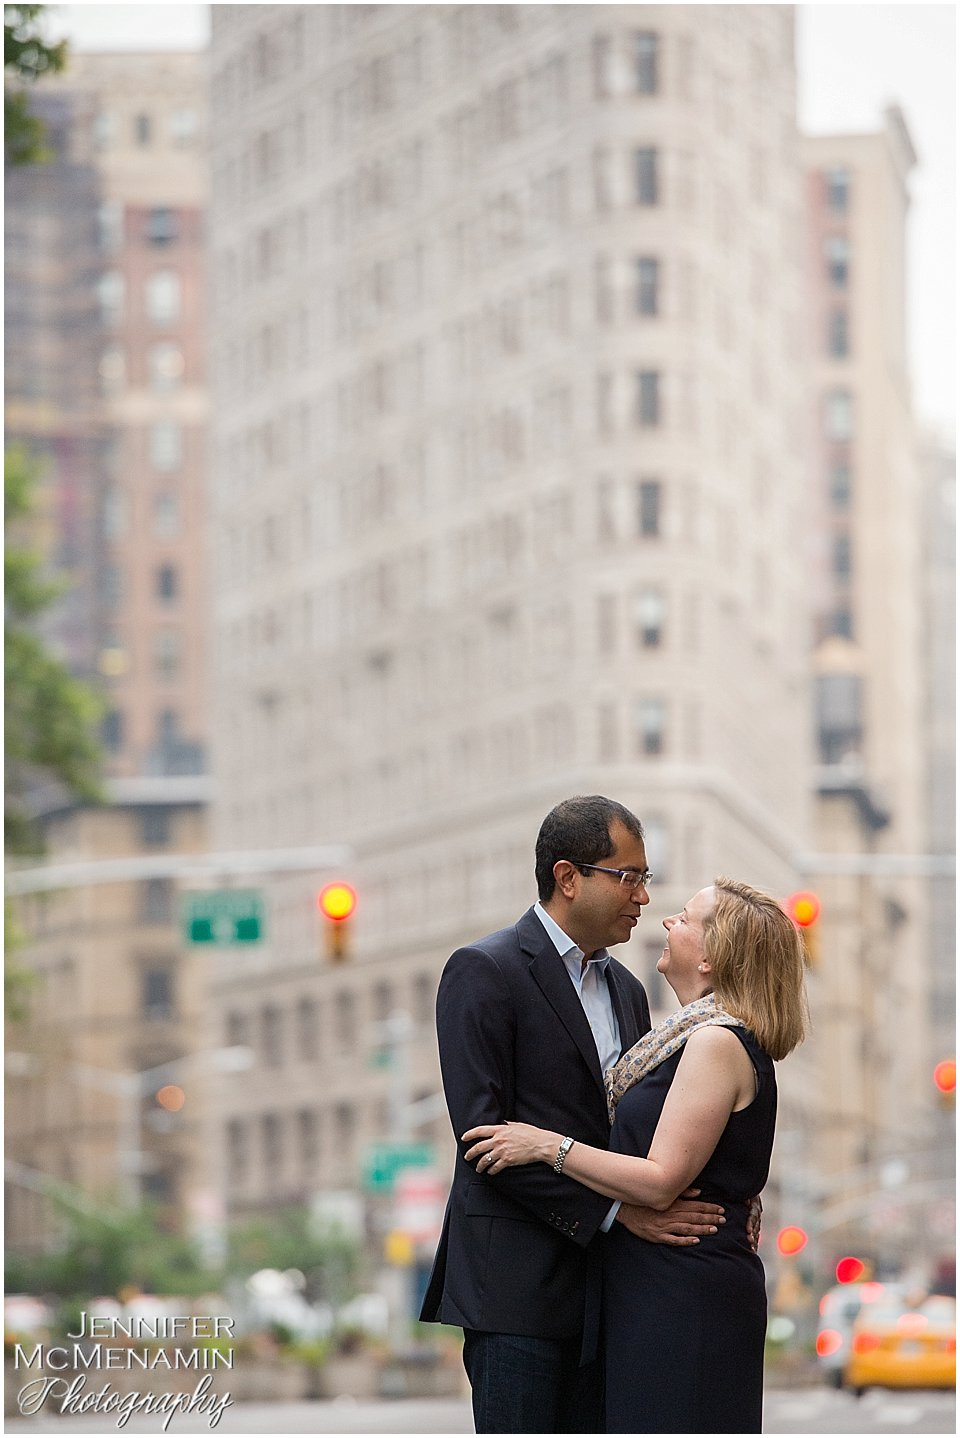 005-AkehurstShetty_0149-0044_Jennifer-McMenamin-Photography-New-York-City-engagement-photos